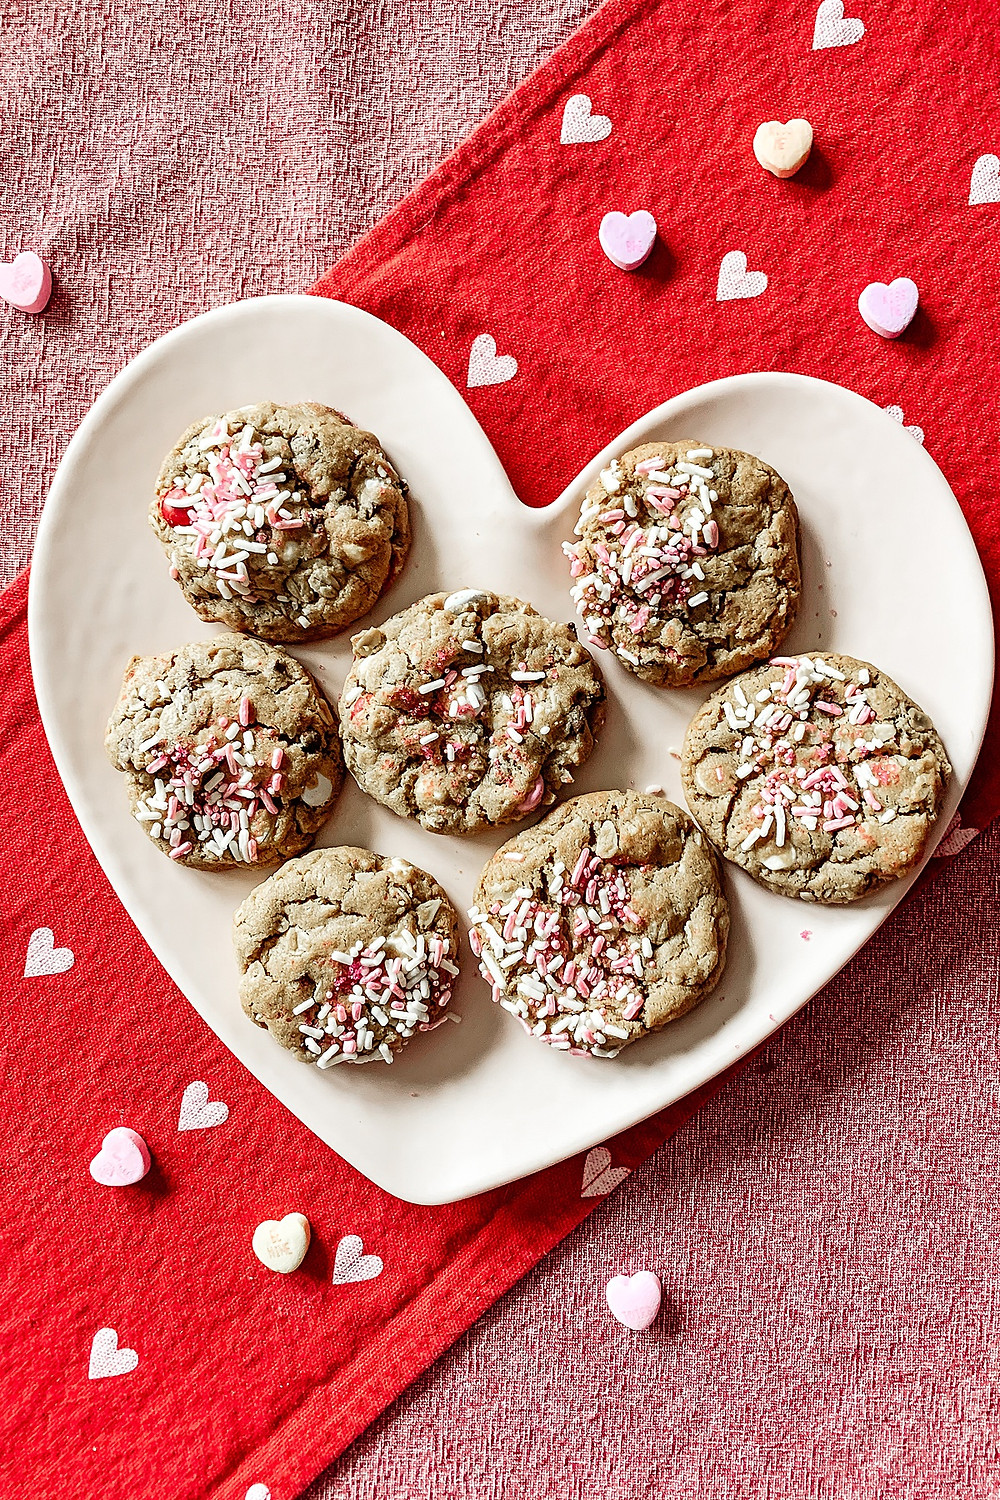 valentines day, valentine treats, valentine cookies, monster cookies, SML Outdoor Living Experts, feeding a crew, peanut butter cookies, oatmeal cookies, m&m cookies, bakery quality cookies, valentine sweets, holiday cookies, cookie ideas, cookie swap, favorite cookie, best cookies, easy cookie recipe, valentine recipe, cookie recipe, patio renovation